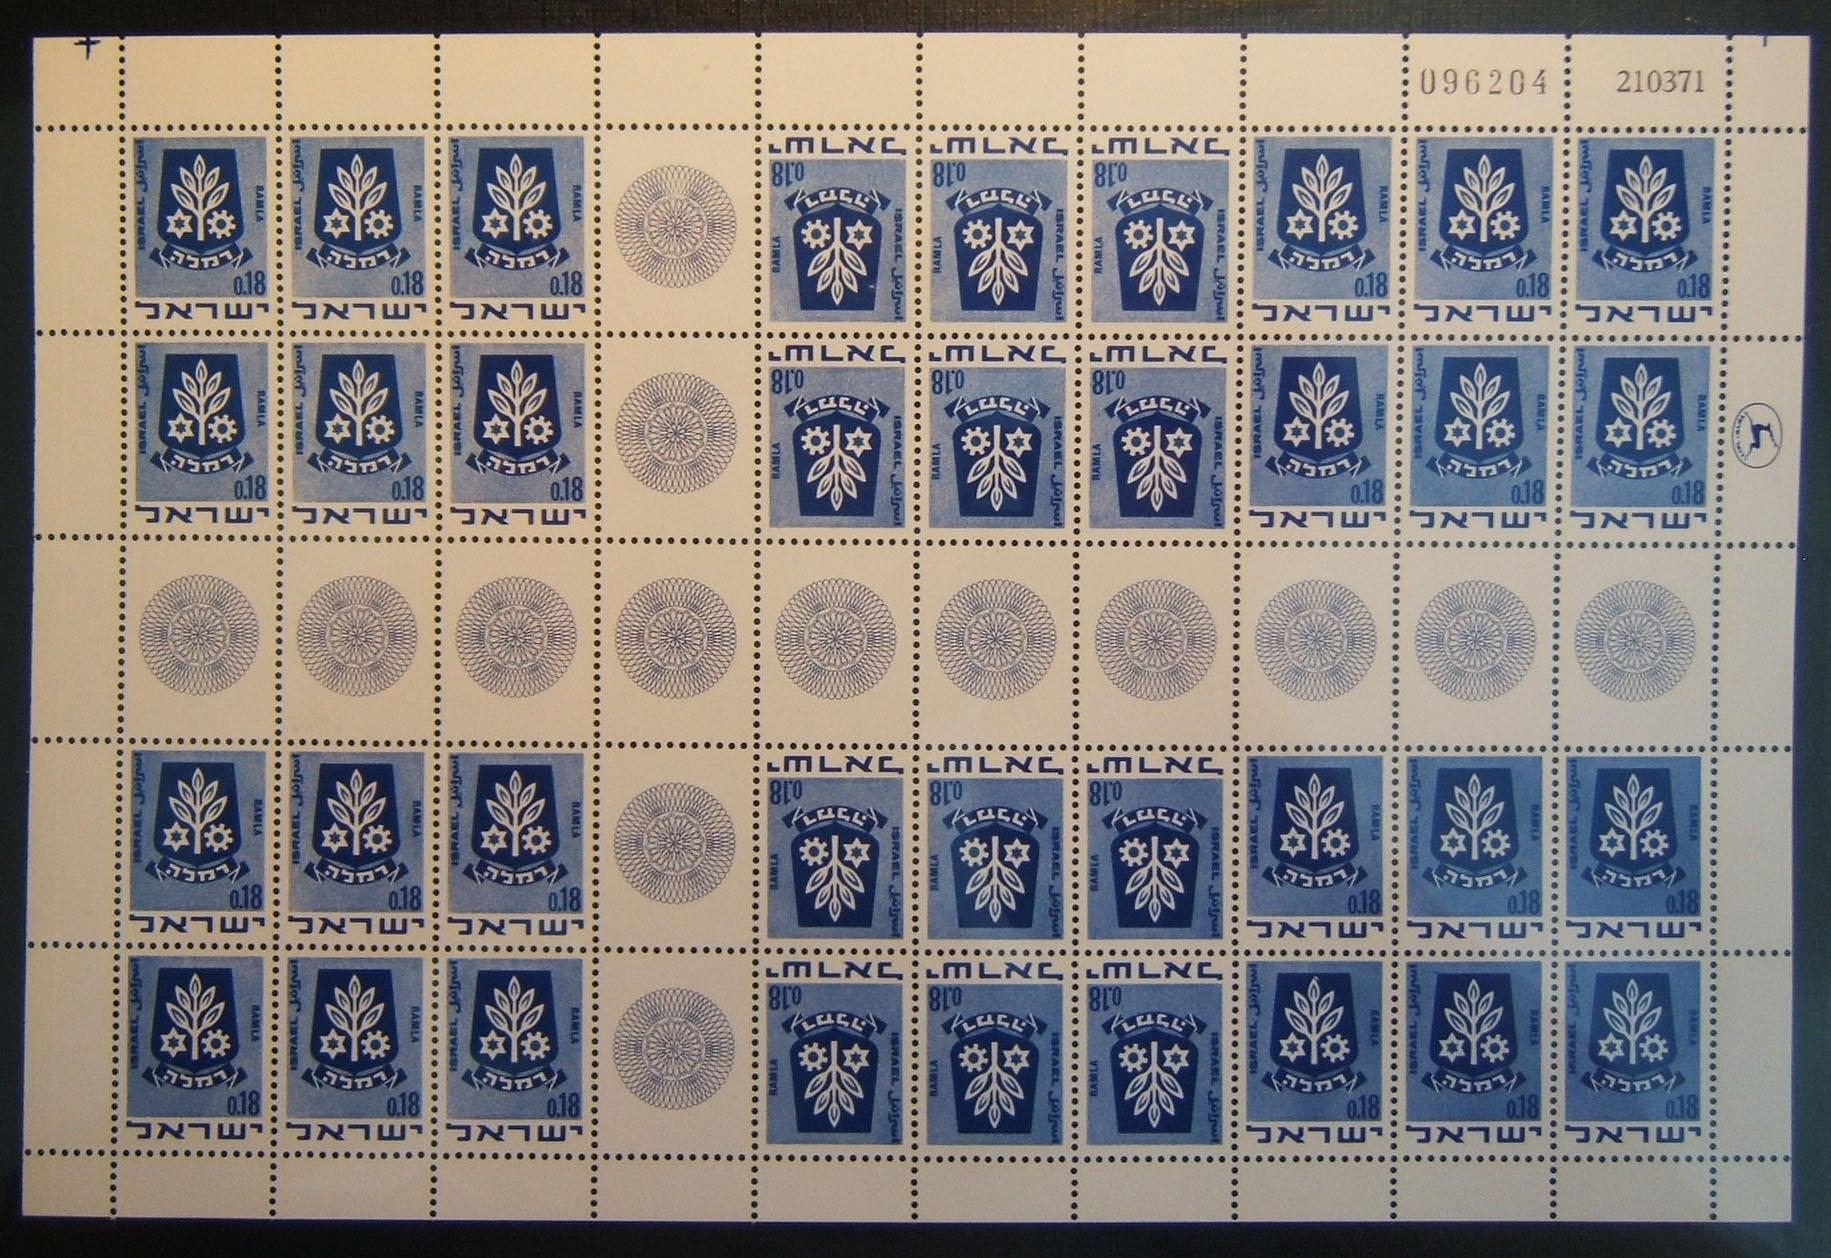 1969 2nd Town Emblems 0.18£ tete beche sheet (Ba IrS.24), MNH